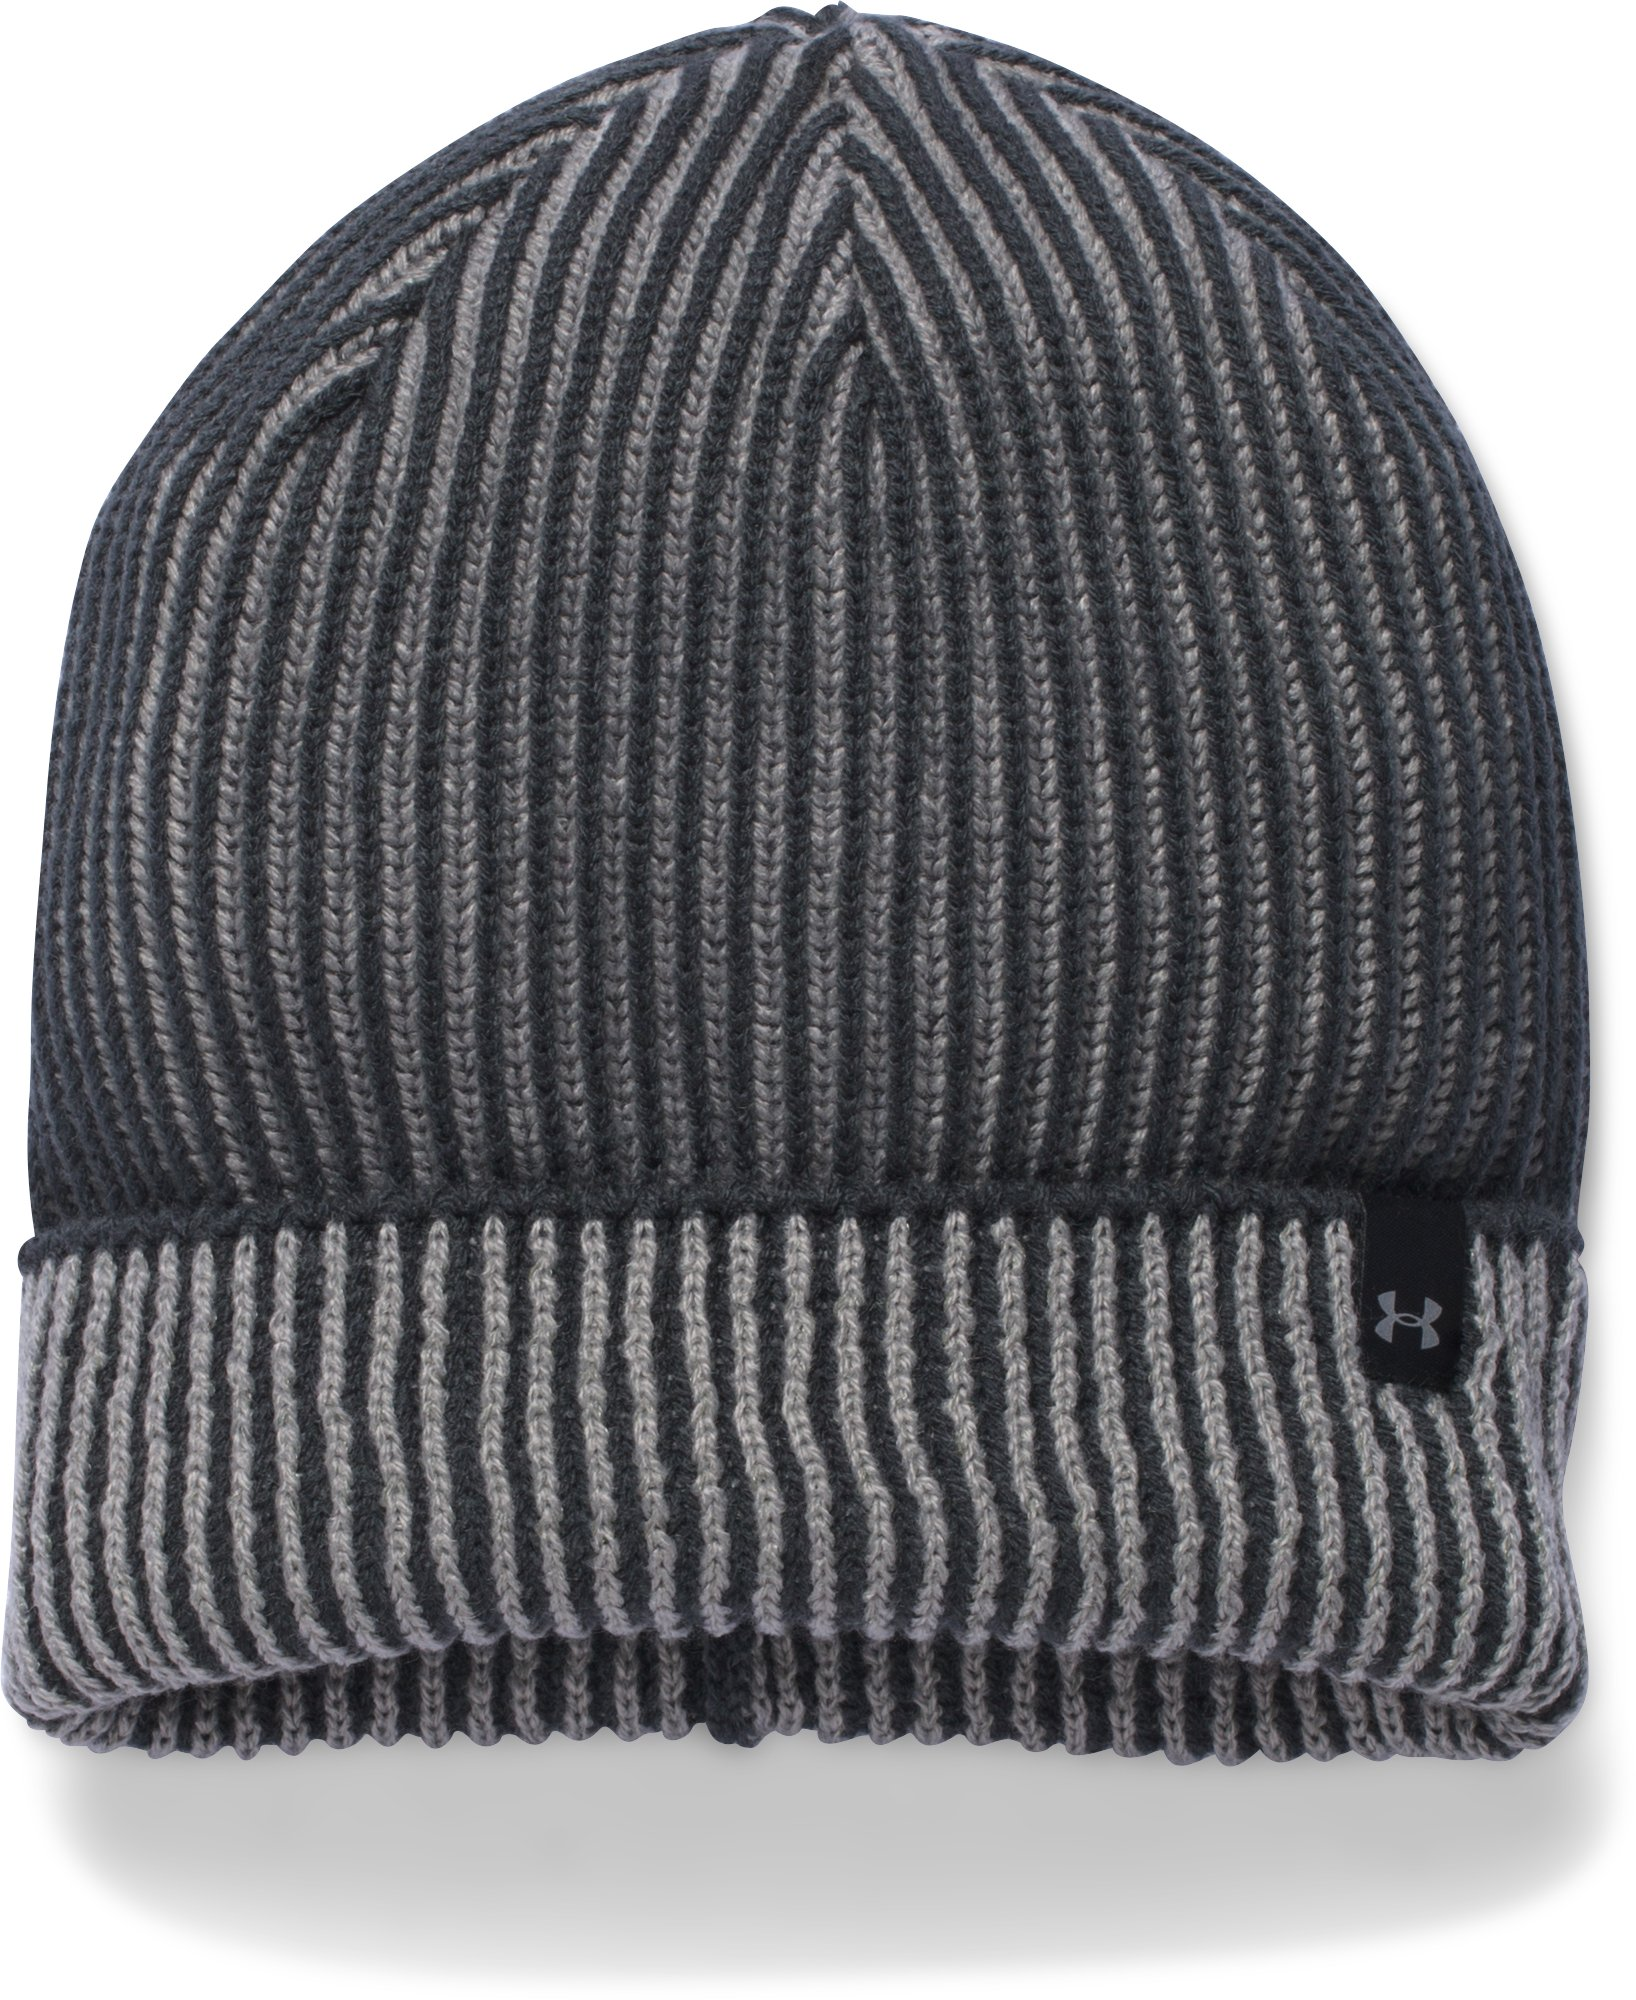 Women's UA Reflective Knit Beanie, STEALTH GRAY